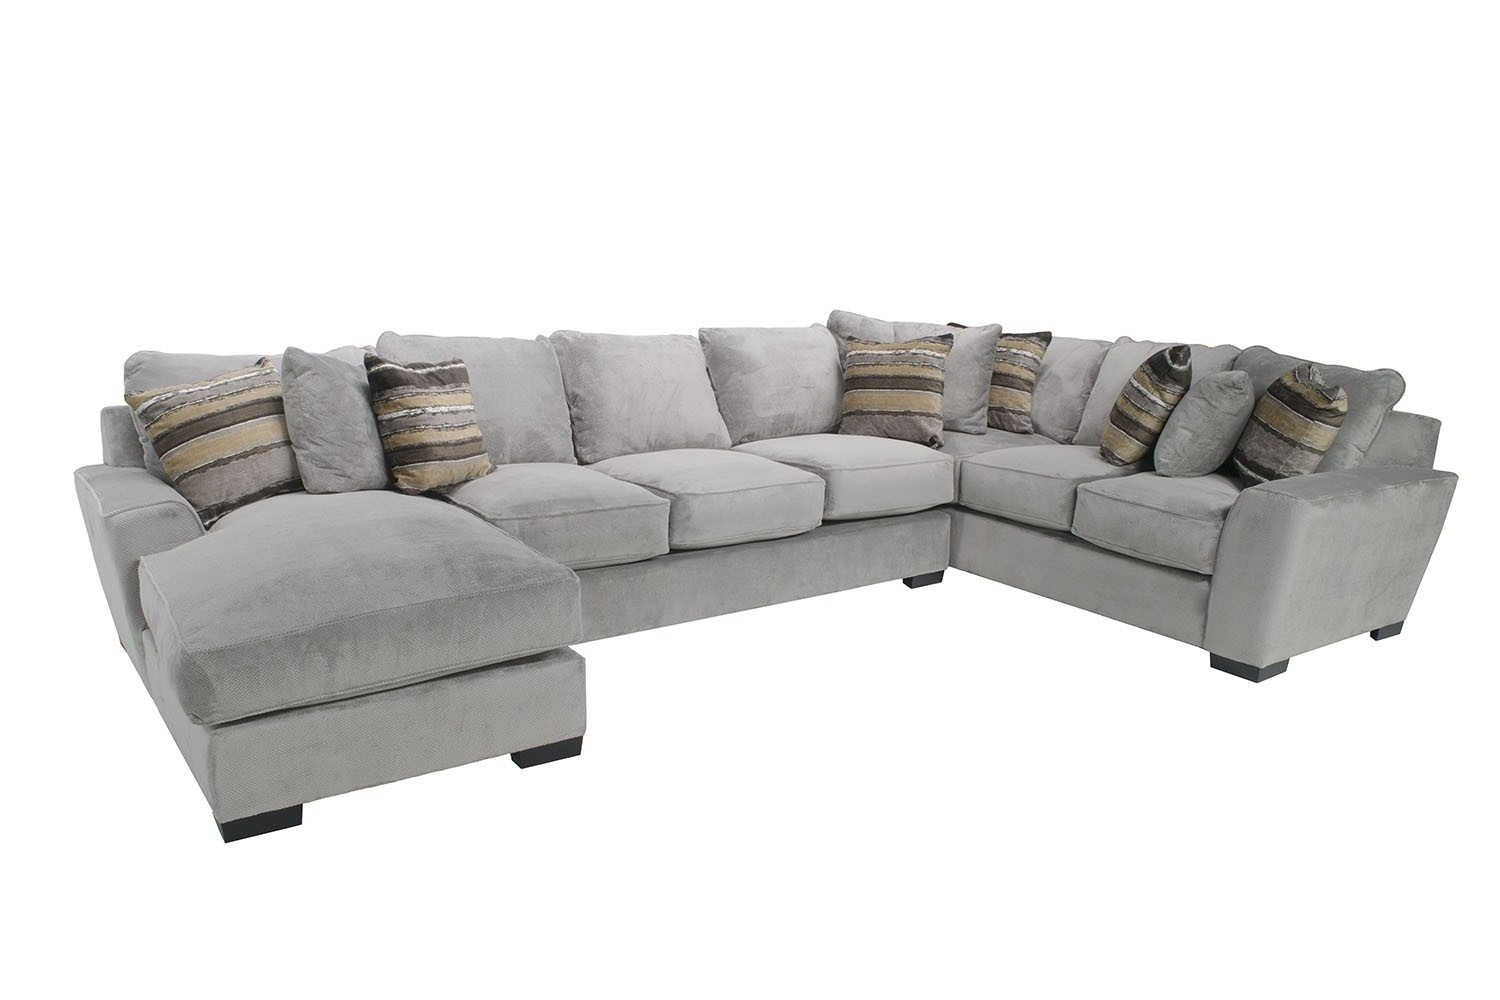 Sectional Sofas | Save Mor Online And In Store In Aspen 2 Piece Sleeper Sectionals With Raf Chaise (Image 22 of 25)